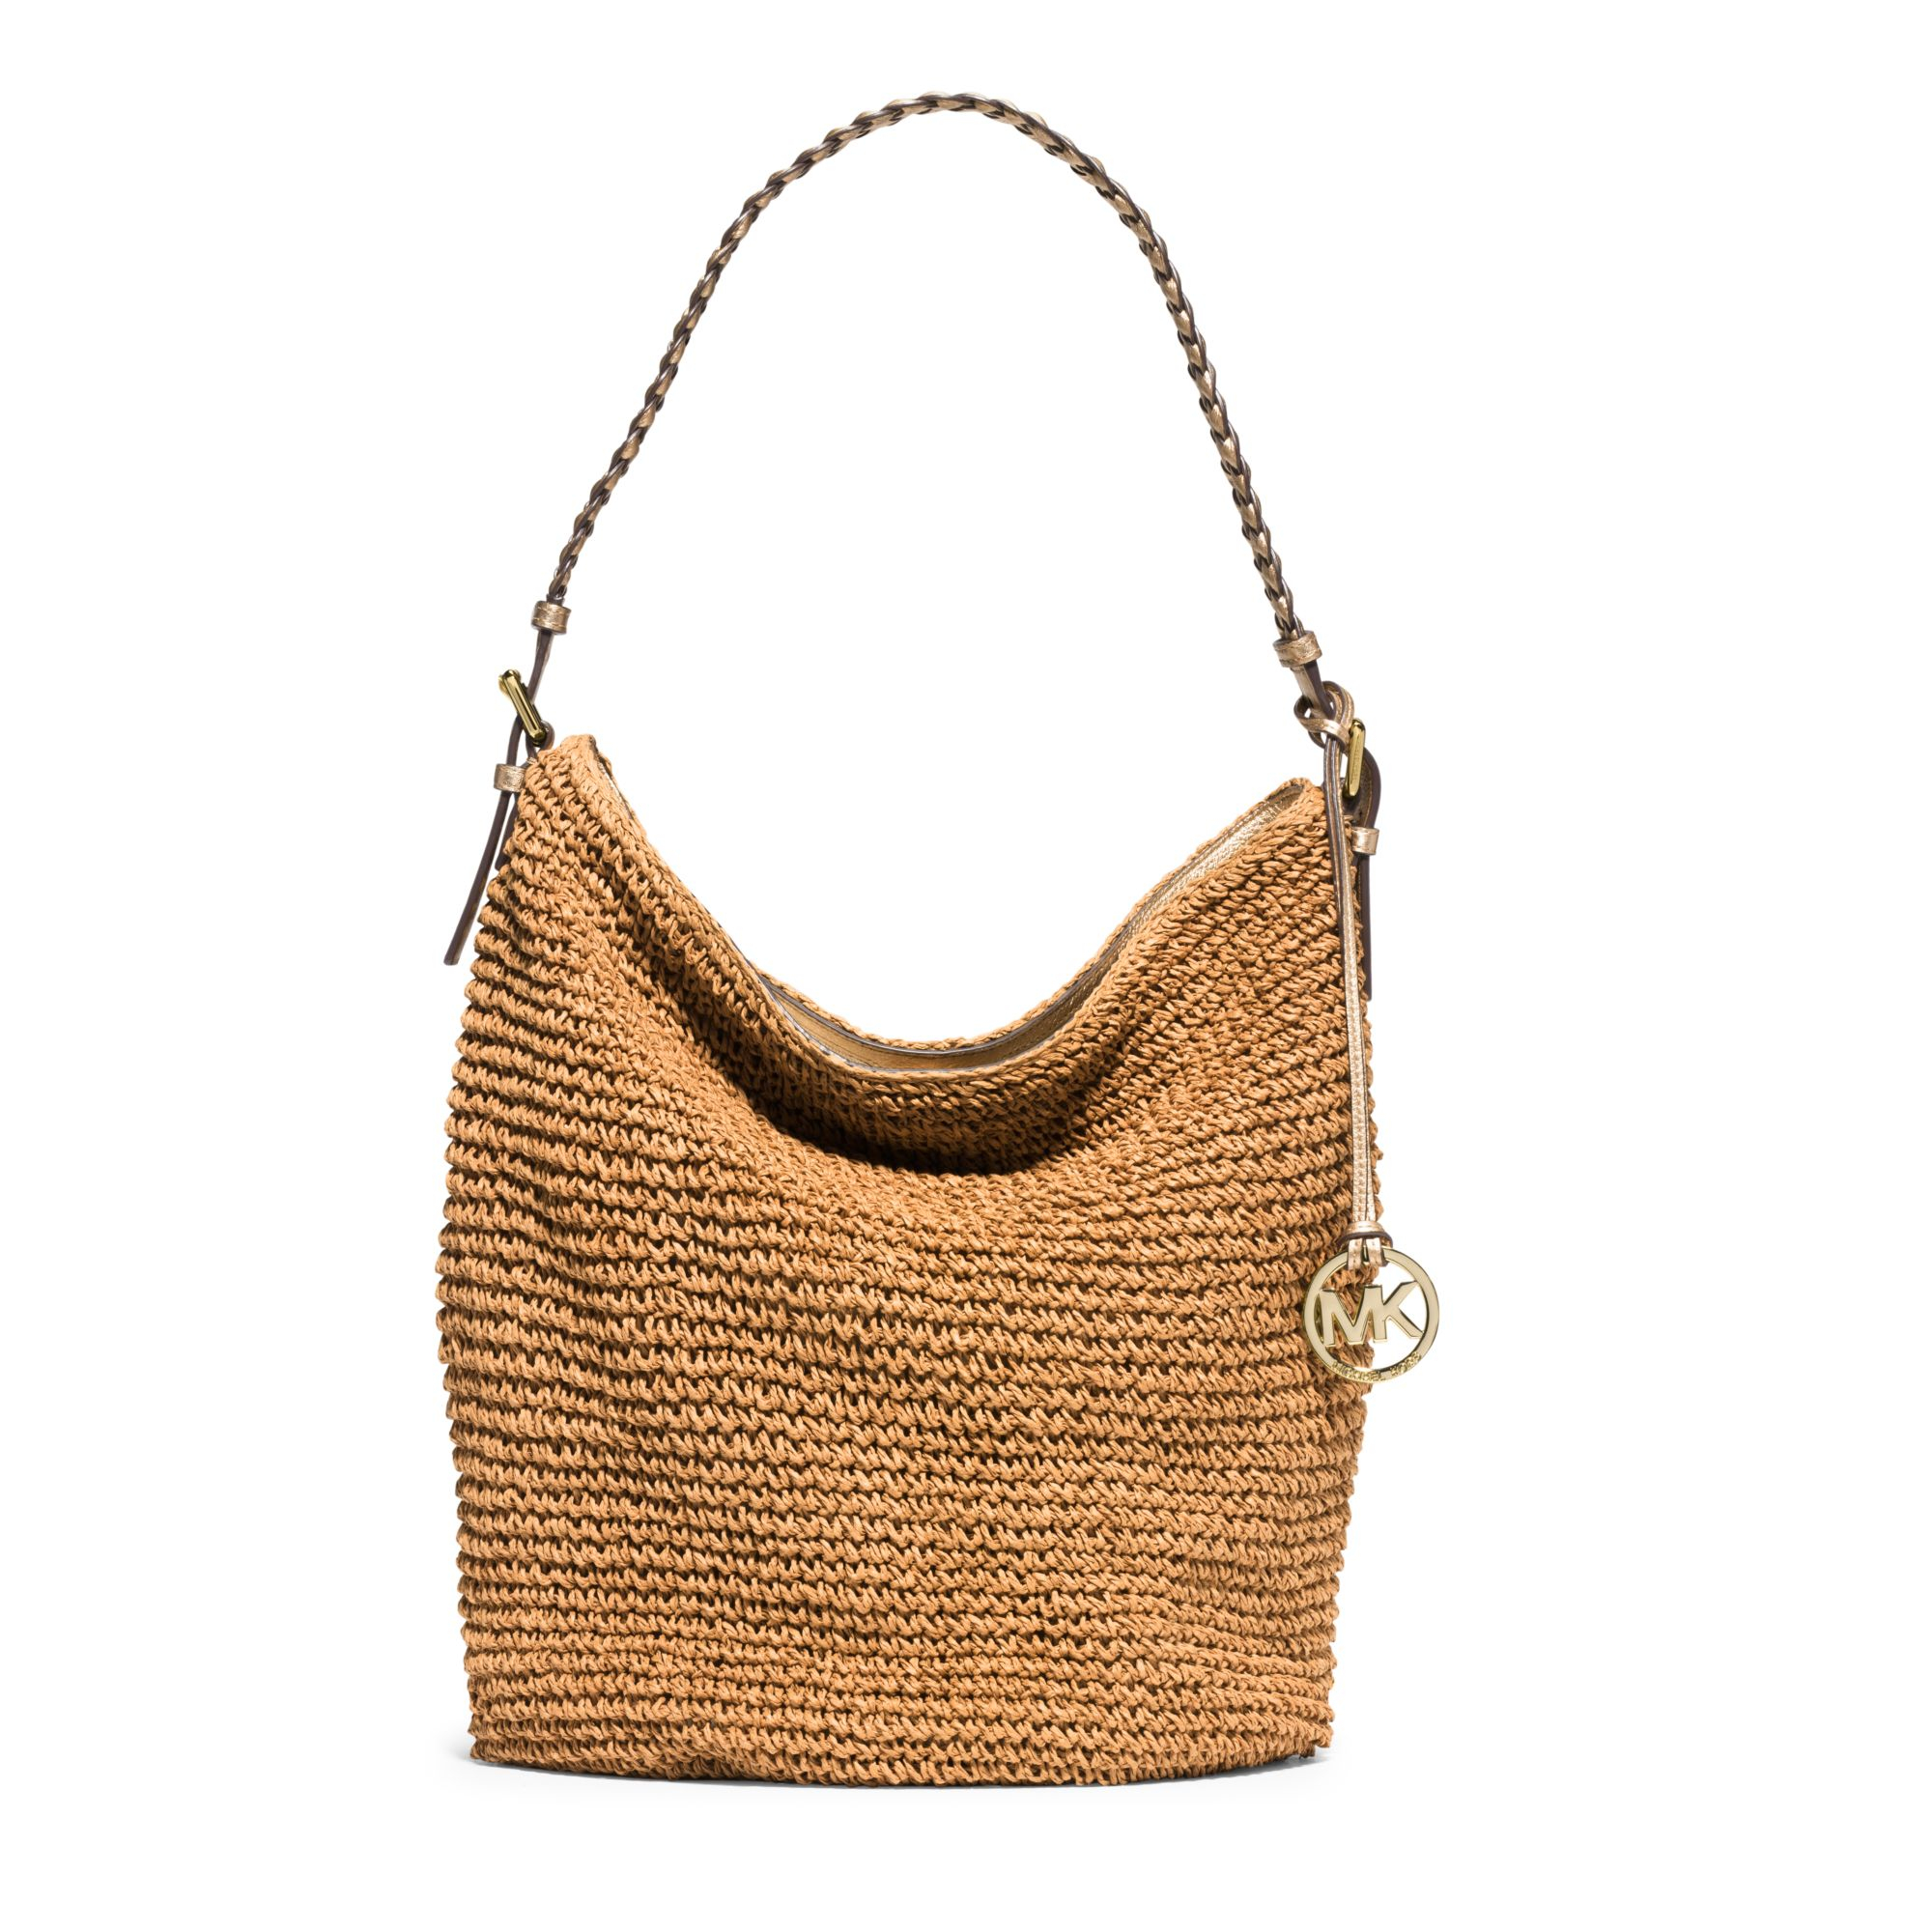 bdb429c901 Lyst - Michael Kors Lola Large Raffia Shoulder Bag in Brown